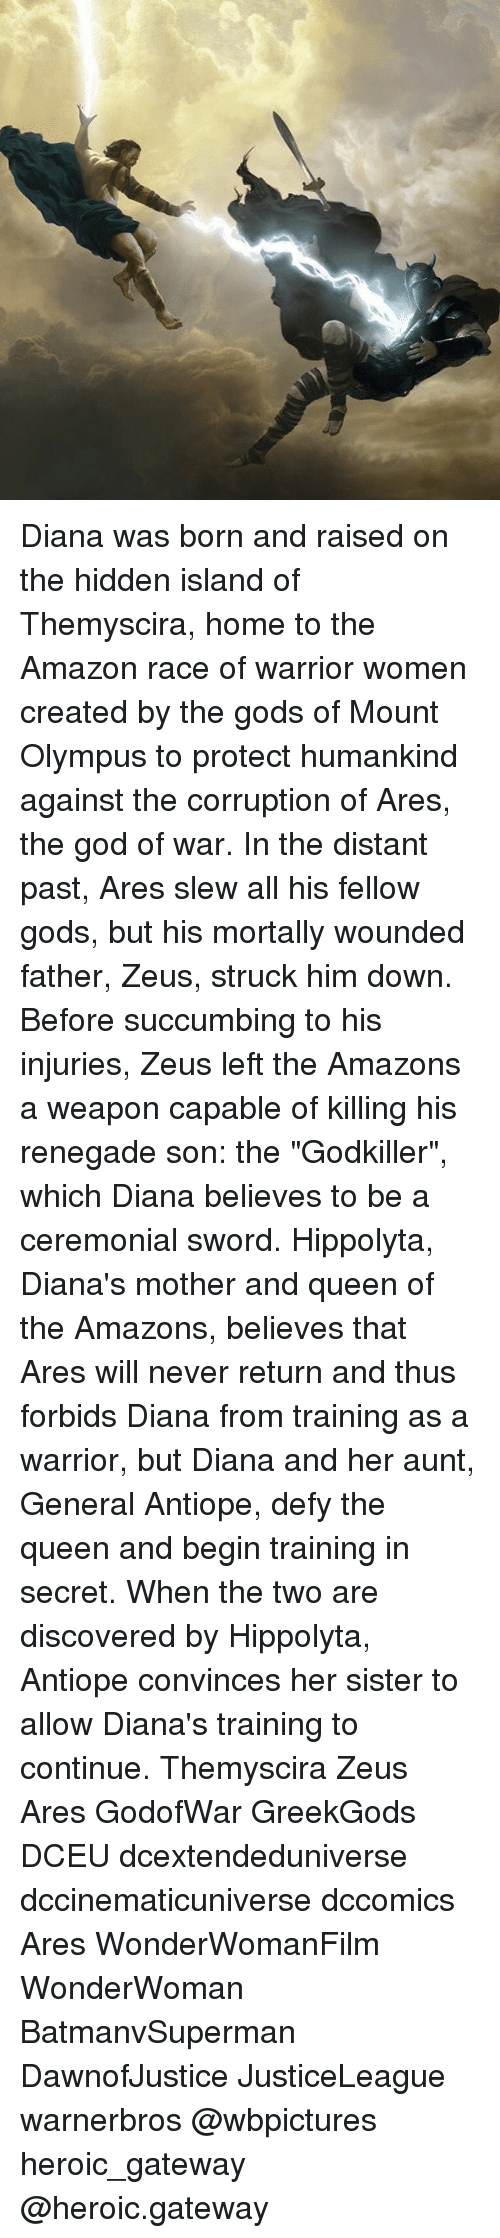 "Amazon, God, and Memes: Diana was born and raised on the hidden island of Themyscira, home to the Amazon race of warrior women created by the gods of Mount Olympus to protect humankind against the corruption of Ares, the god of war. In the distant past, Ares slew all his fellow gods, but his mortally wounded father, Zeus, struck him down. Before succumbing to his injuries, Zeus left the Amazons a weapon capable of killing his renegade son: the ""Godkiller"", which Diana believes to be a ceremonial sword. Hippolyta, Diana's mother and queen of the Amazons, believes that Ares will never return and thus forbids Diana from training as a warrior, but Diana and her aunt, General Antiope, defy the queen and begin training in secret. When the two are discovered by Hippolyta, Antiope convinces her sister to allow Diana's training to continue. Themyscira Zeus Ares GodofWar GreekGods DCEU dcextendeduniverse dccinematicuniverse dccomics Ares WonderWomanFilm WonderWoman BatmanvSuperman DawnofJustice JusticeLeague warnerbros @wbpictures heroic_gateway @heroic.gateway"